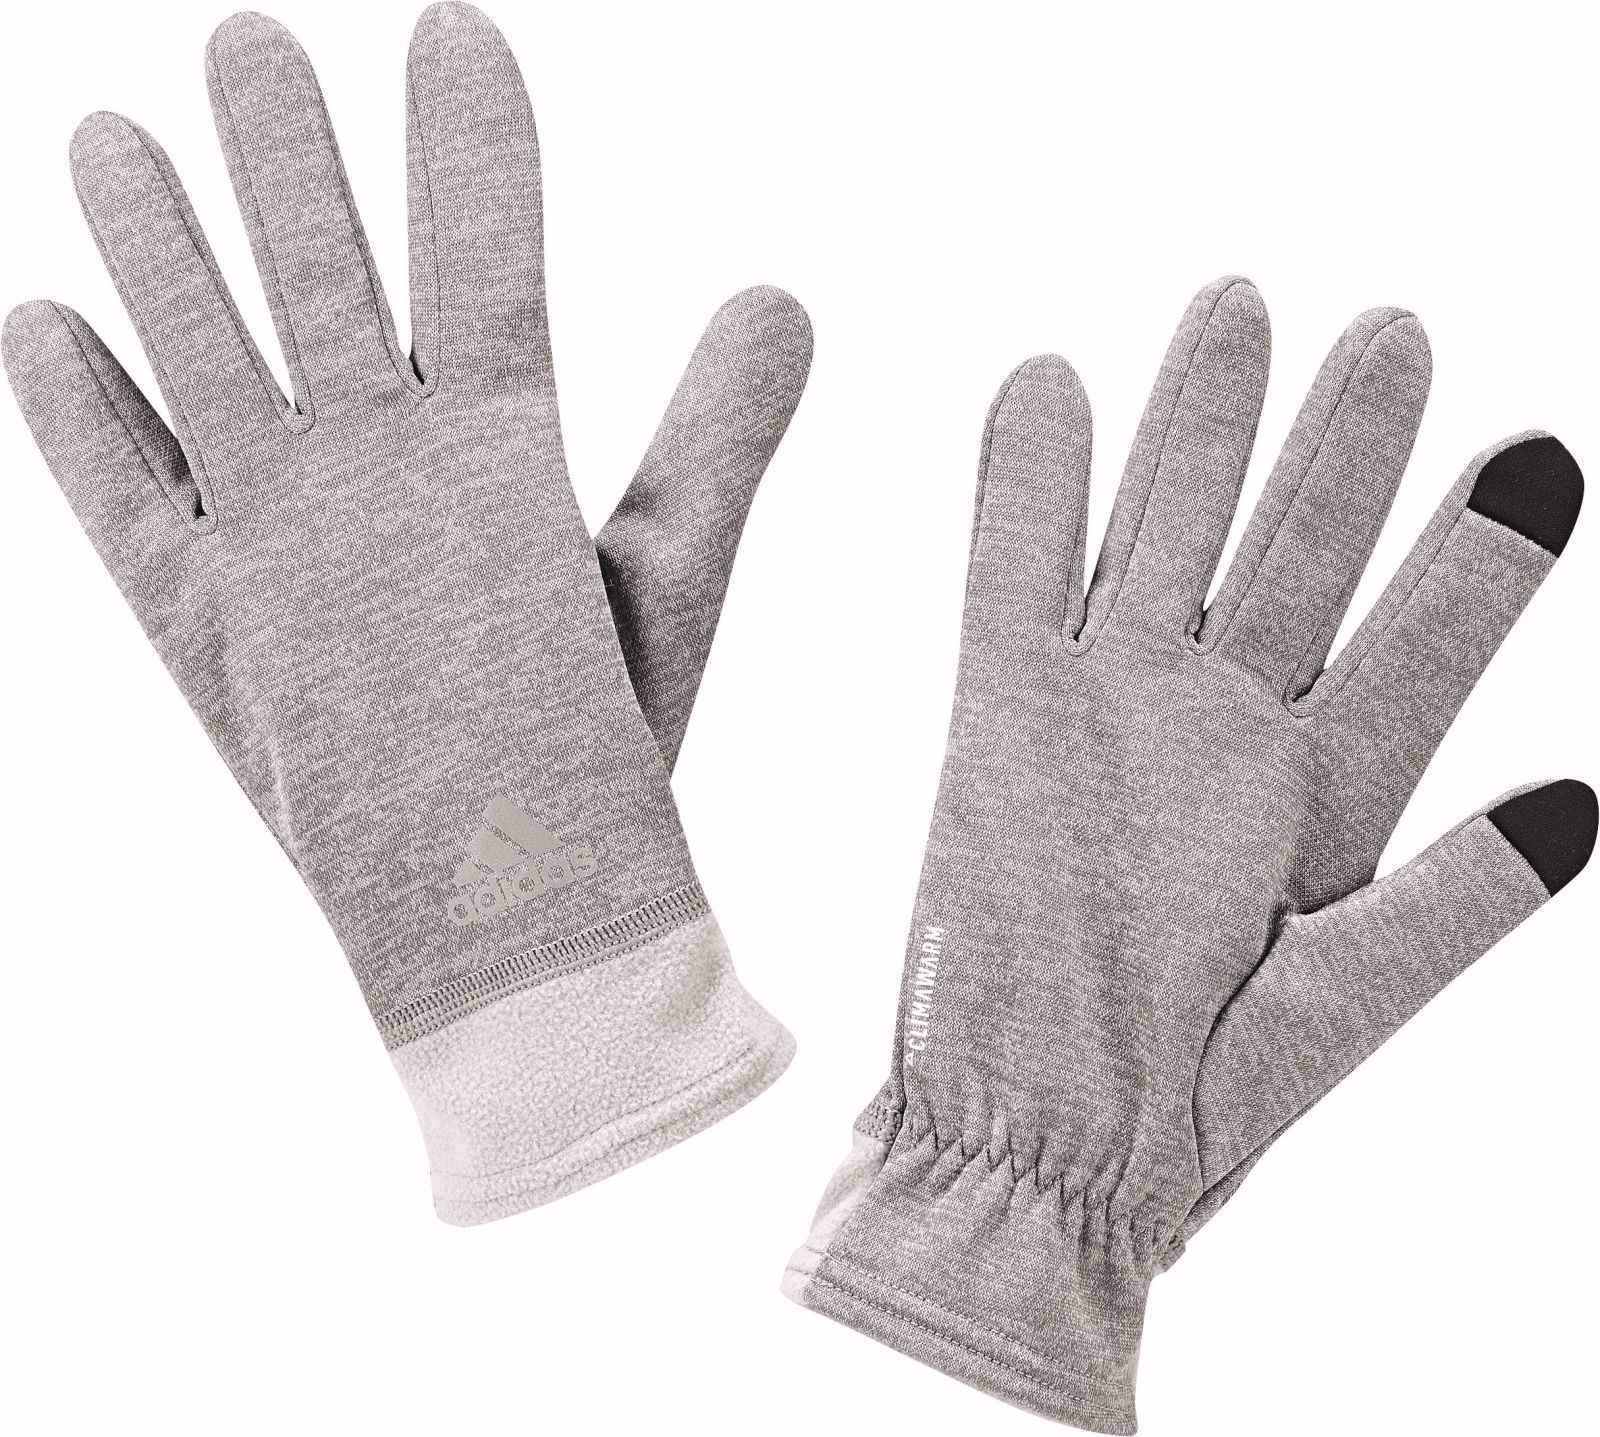 Details about Adidas performance mens climawarm gloves gloves grey show original title